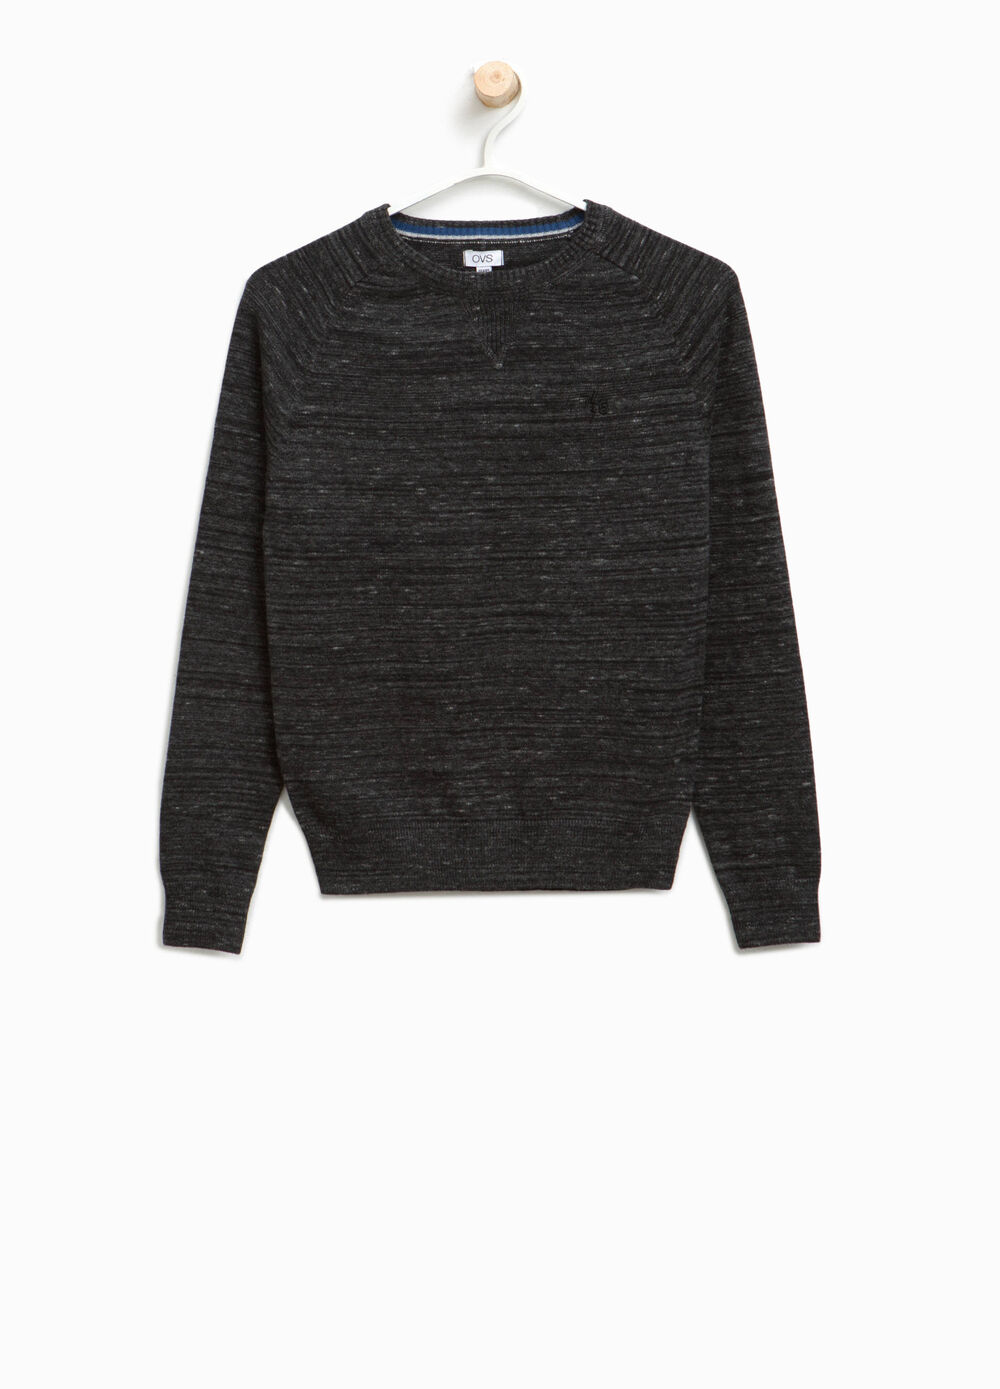 100% cotton pullover with embroidery